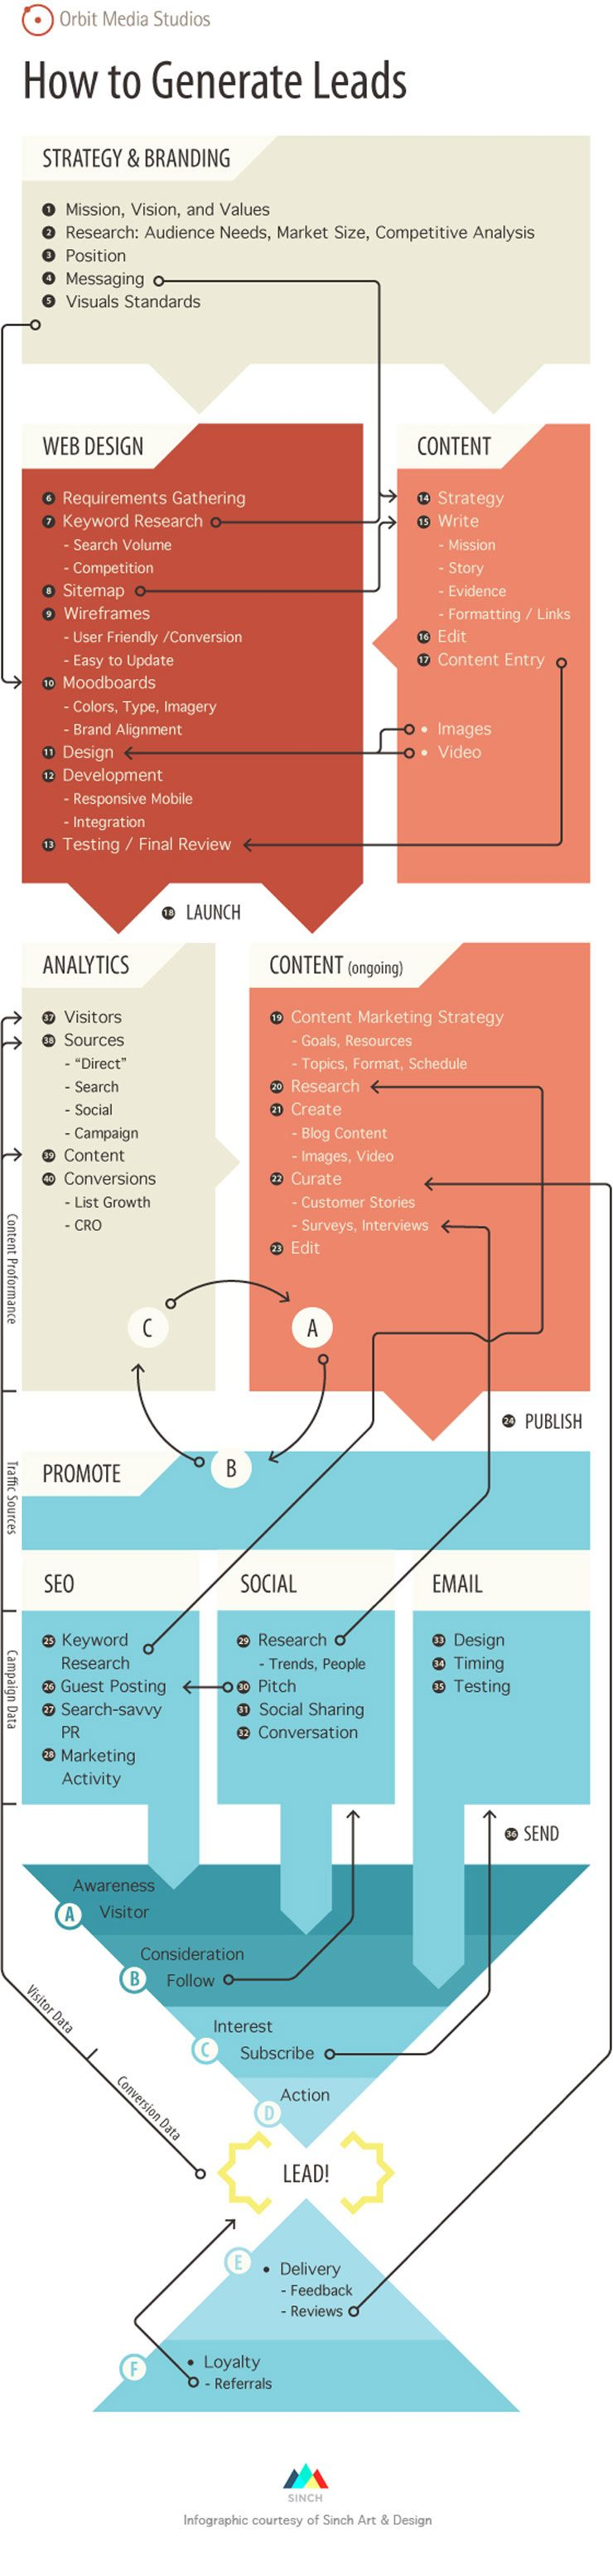 Come generare leads | Infographs | Pinterest | Infographic, Seo and ...